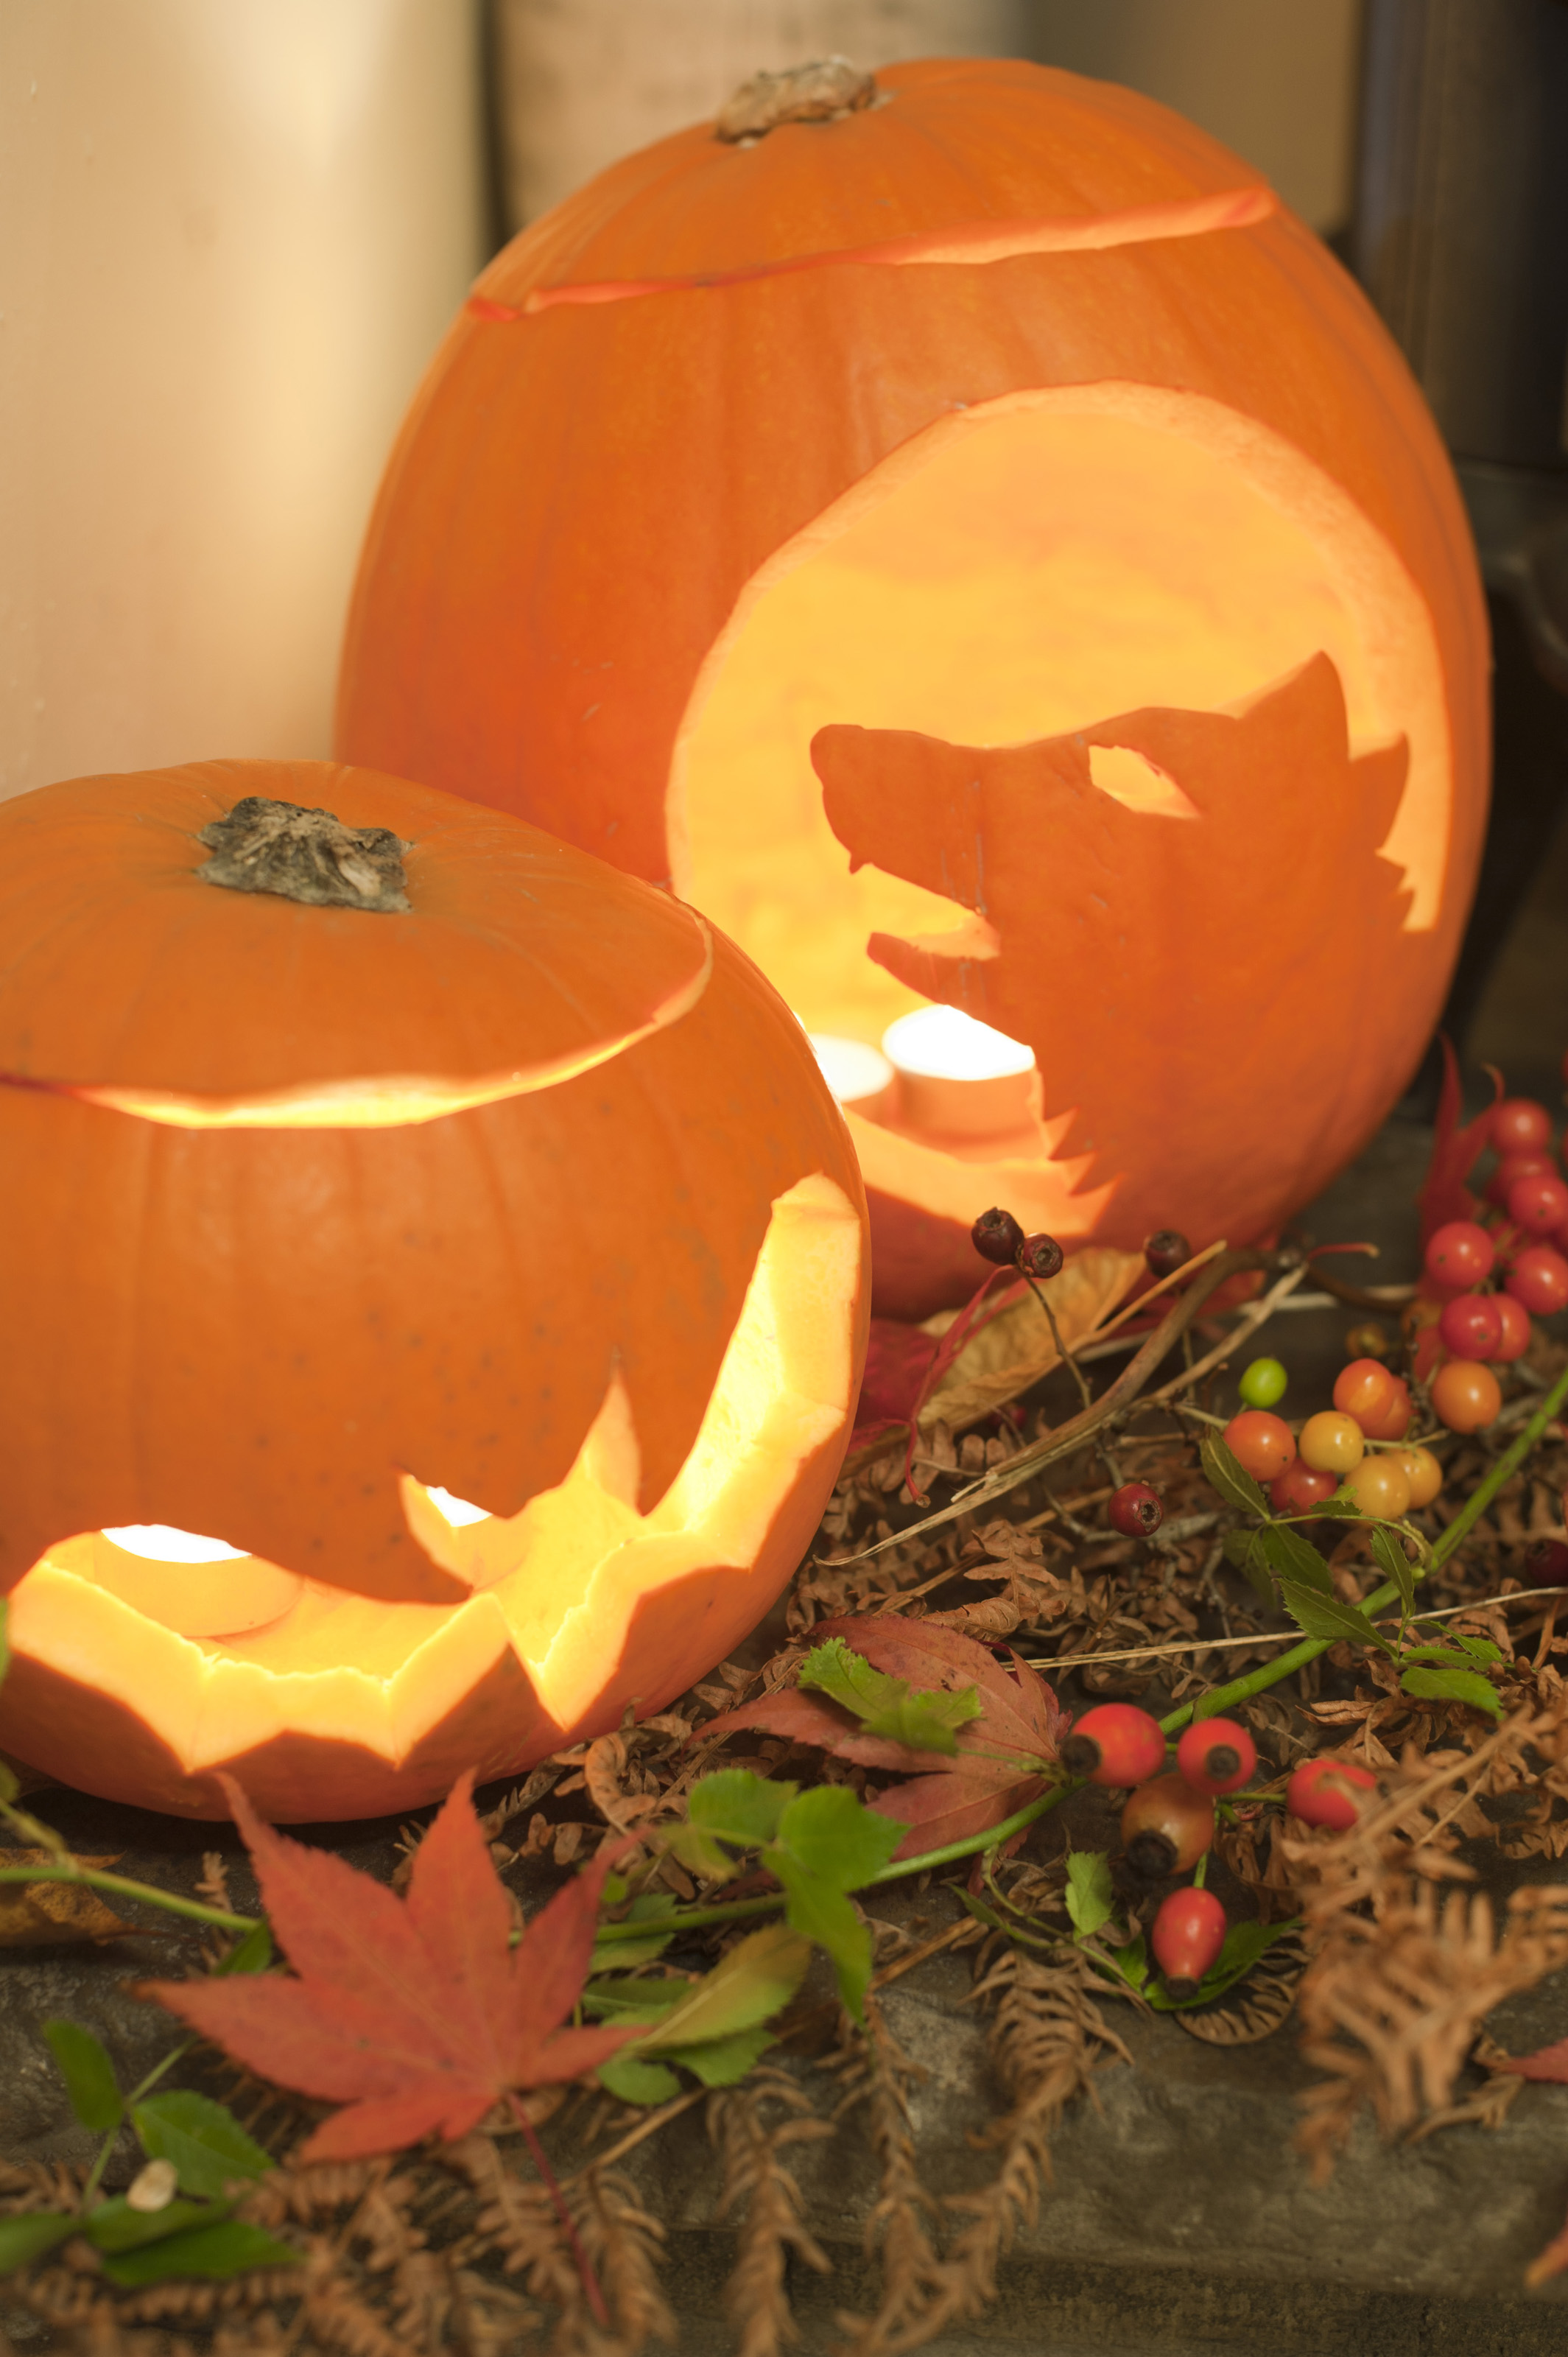 Two glowing Halloween Jack-o-lanterns with a display of colorful autumn or fall berries and leaves, one with a bat pattern and one a wolf or werewolf howling at the moon